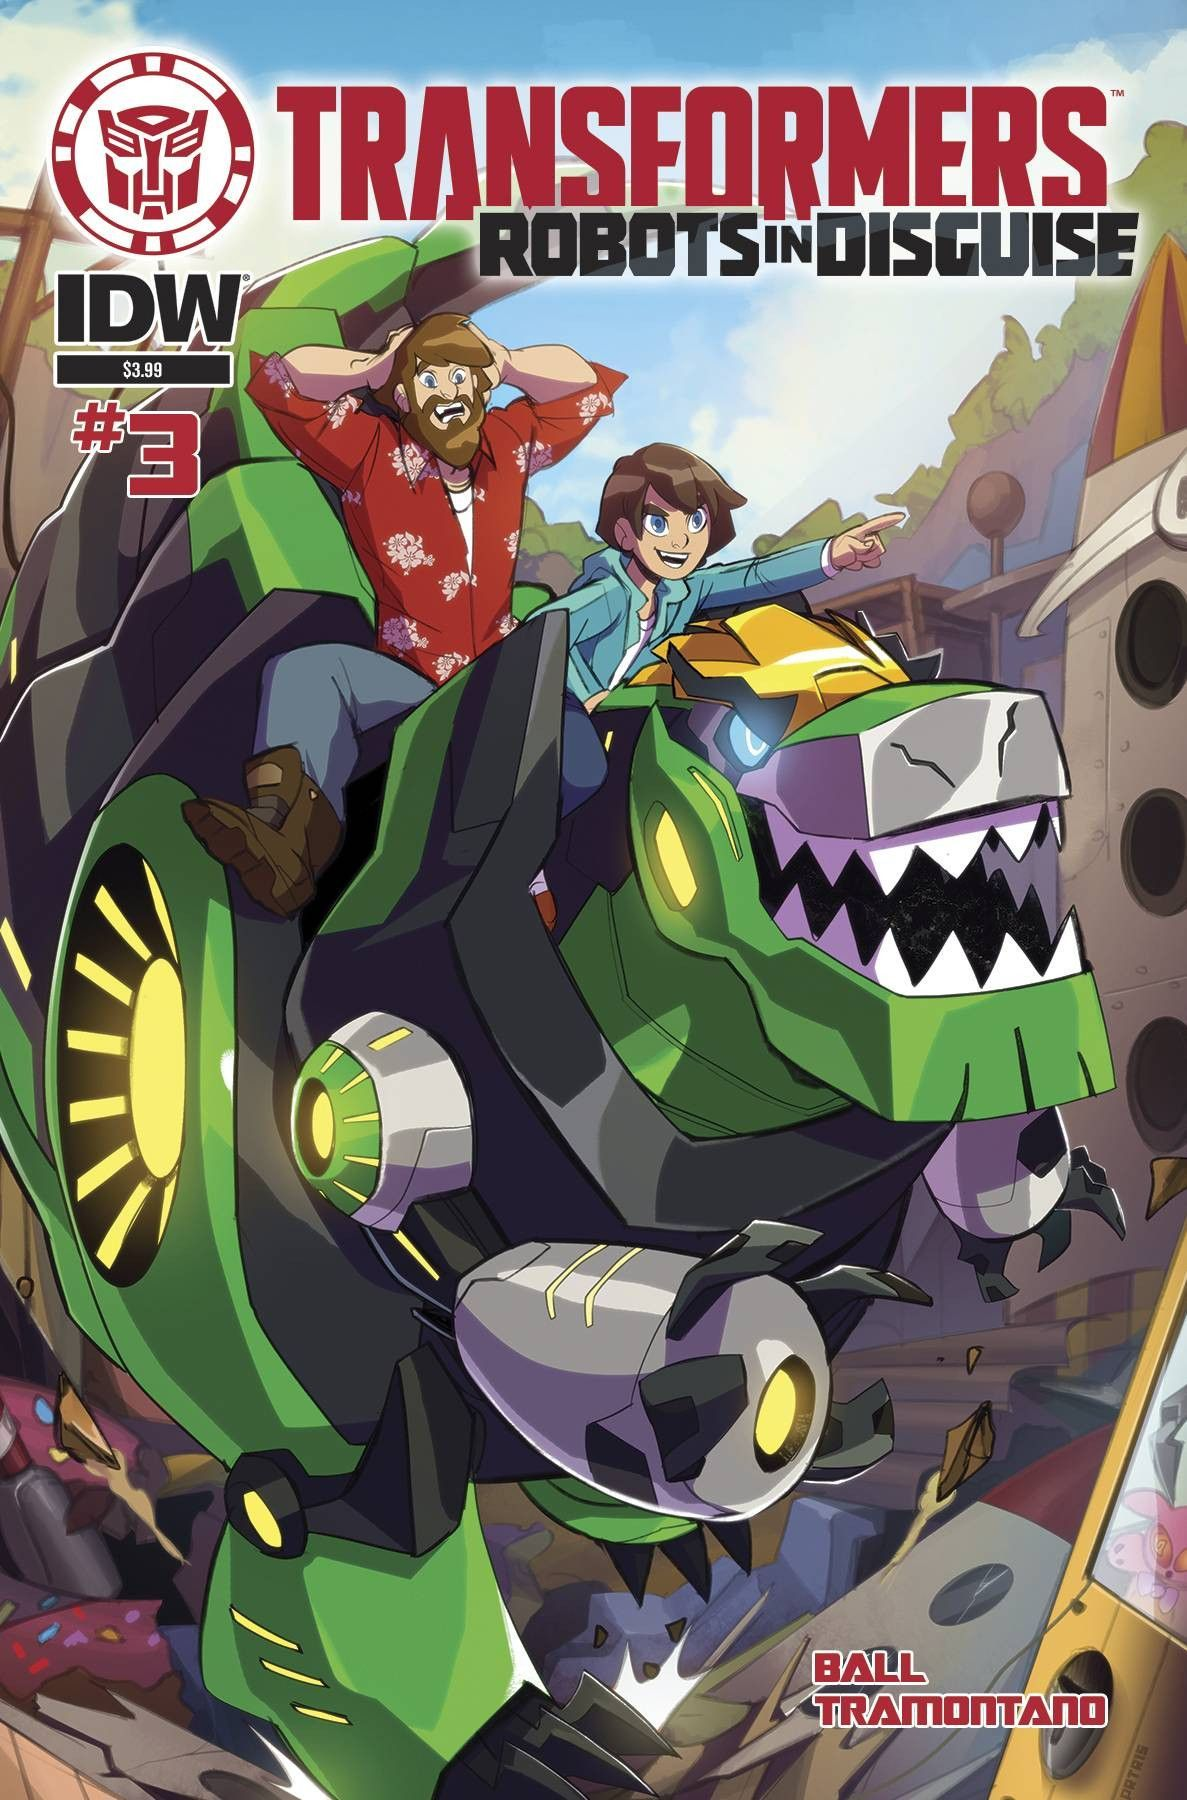 Transformers: Robots in Disguise Animated #3